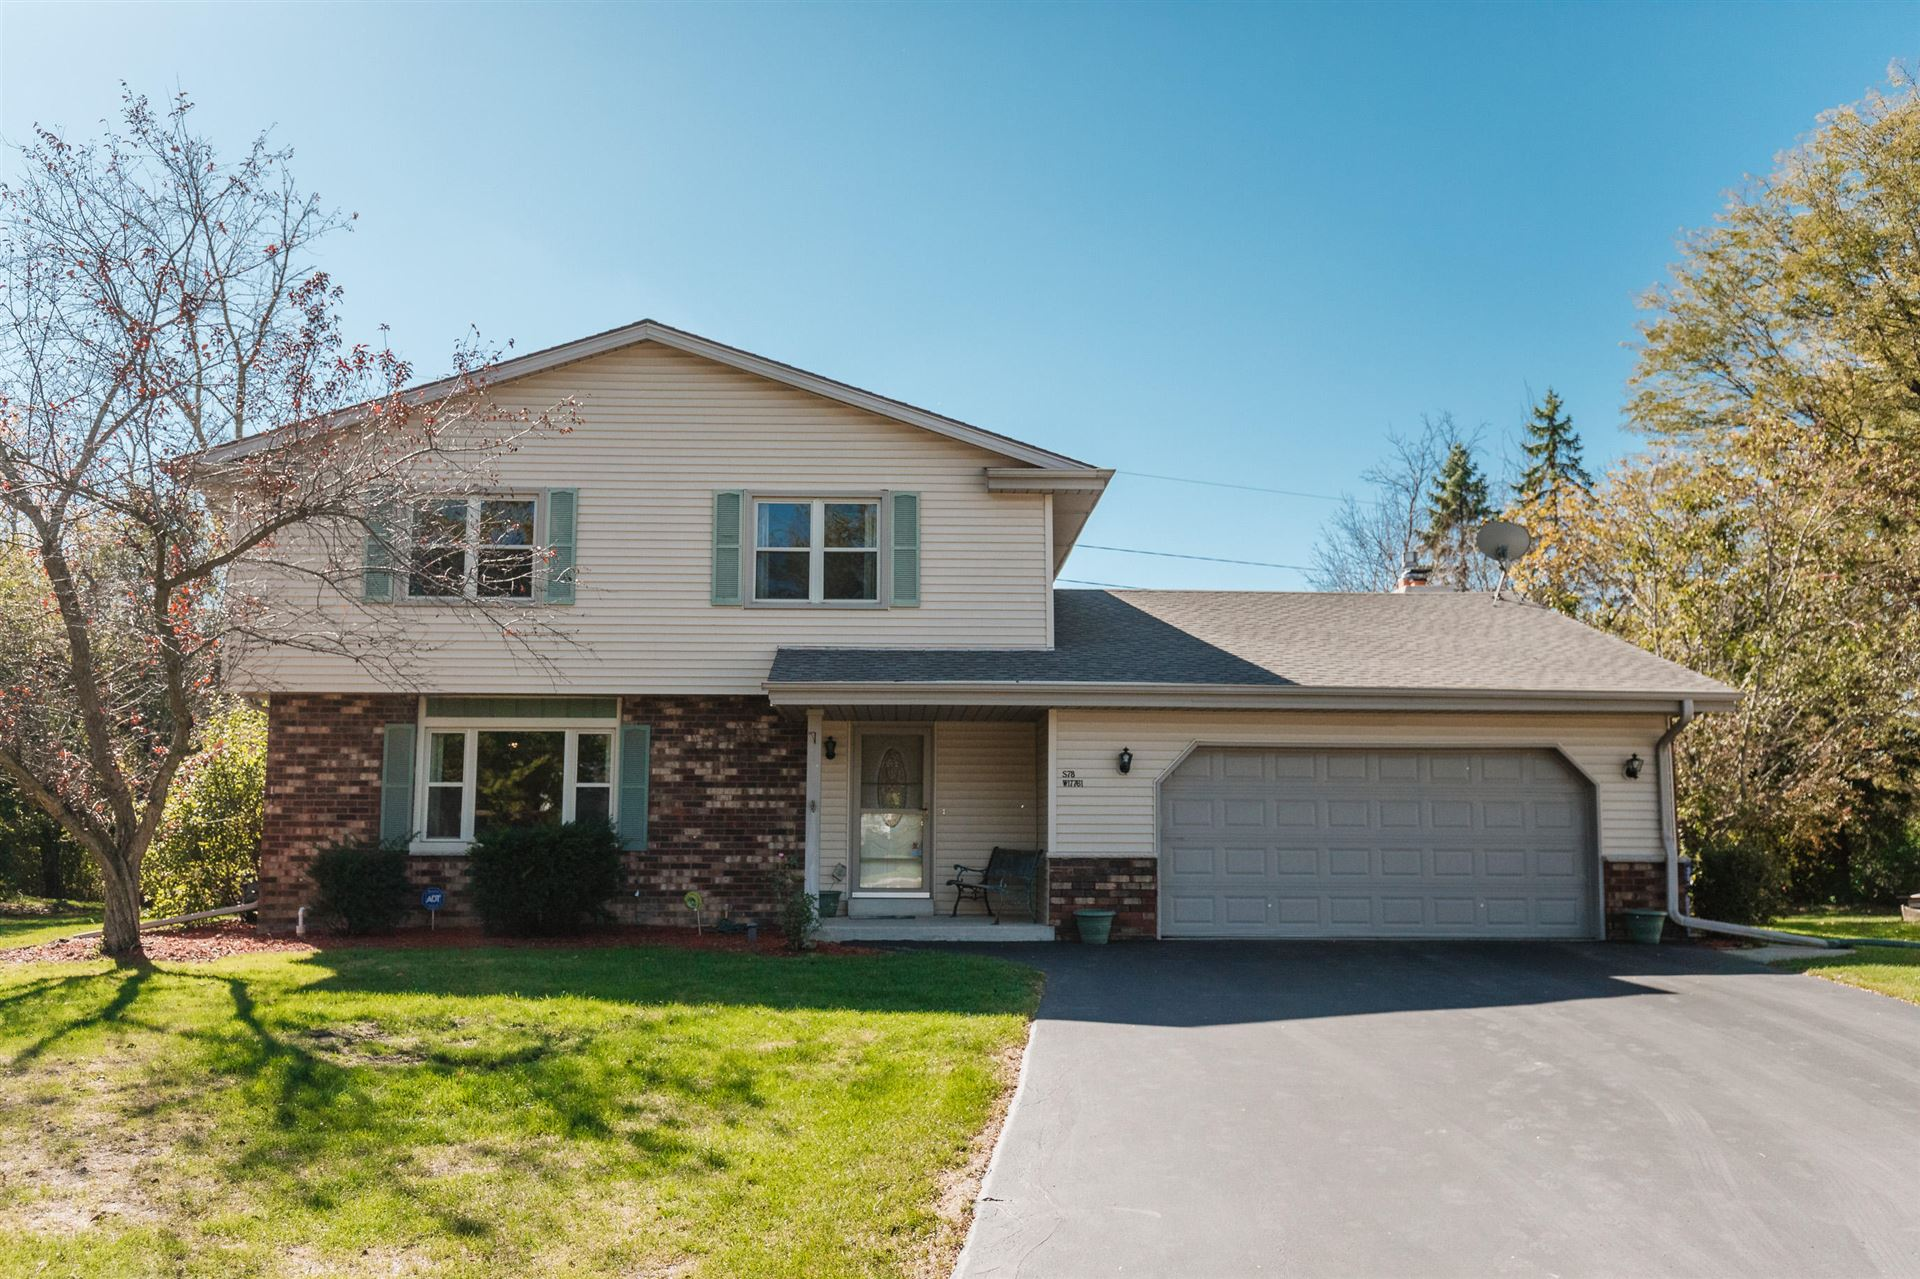 S78W17761 Canfield Ct, Muskego, WI 53150 - #: 1713577